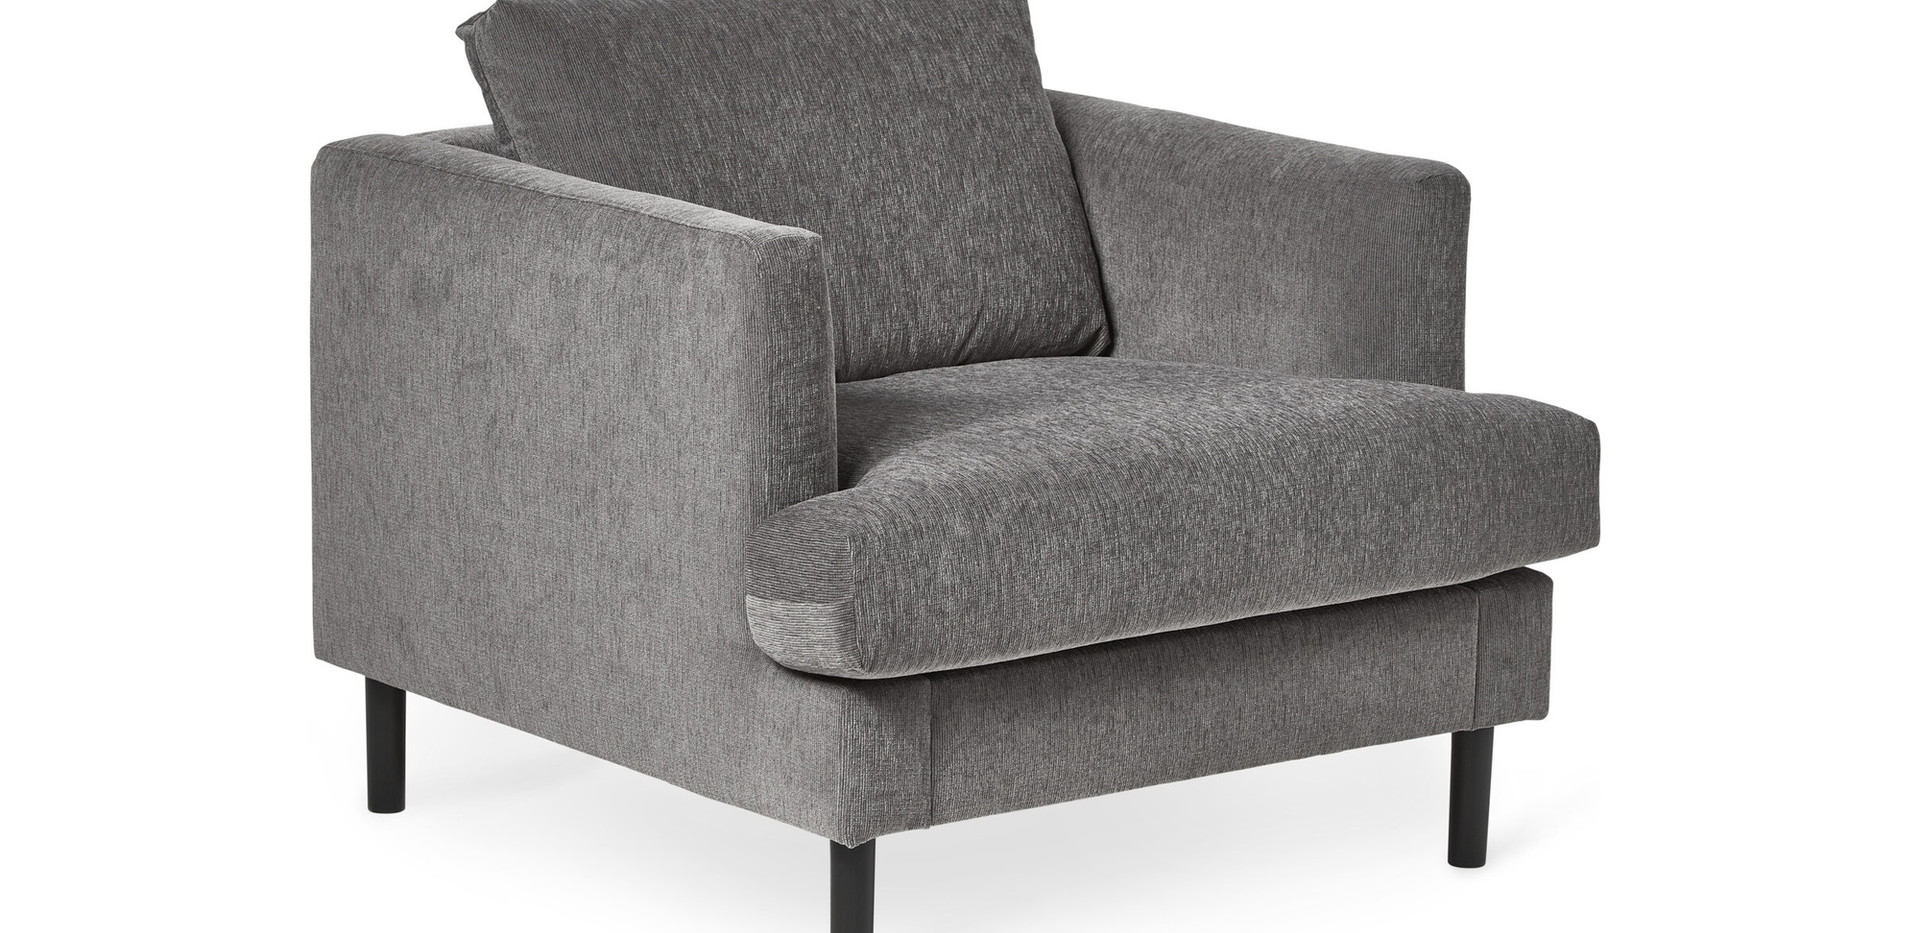 Maison 1so Nors grey